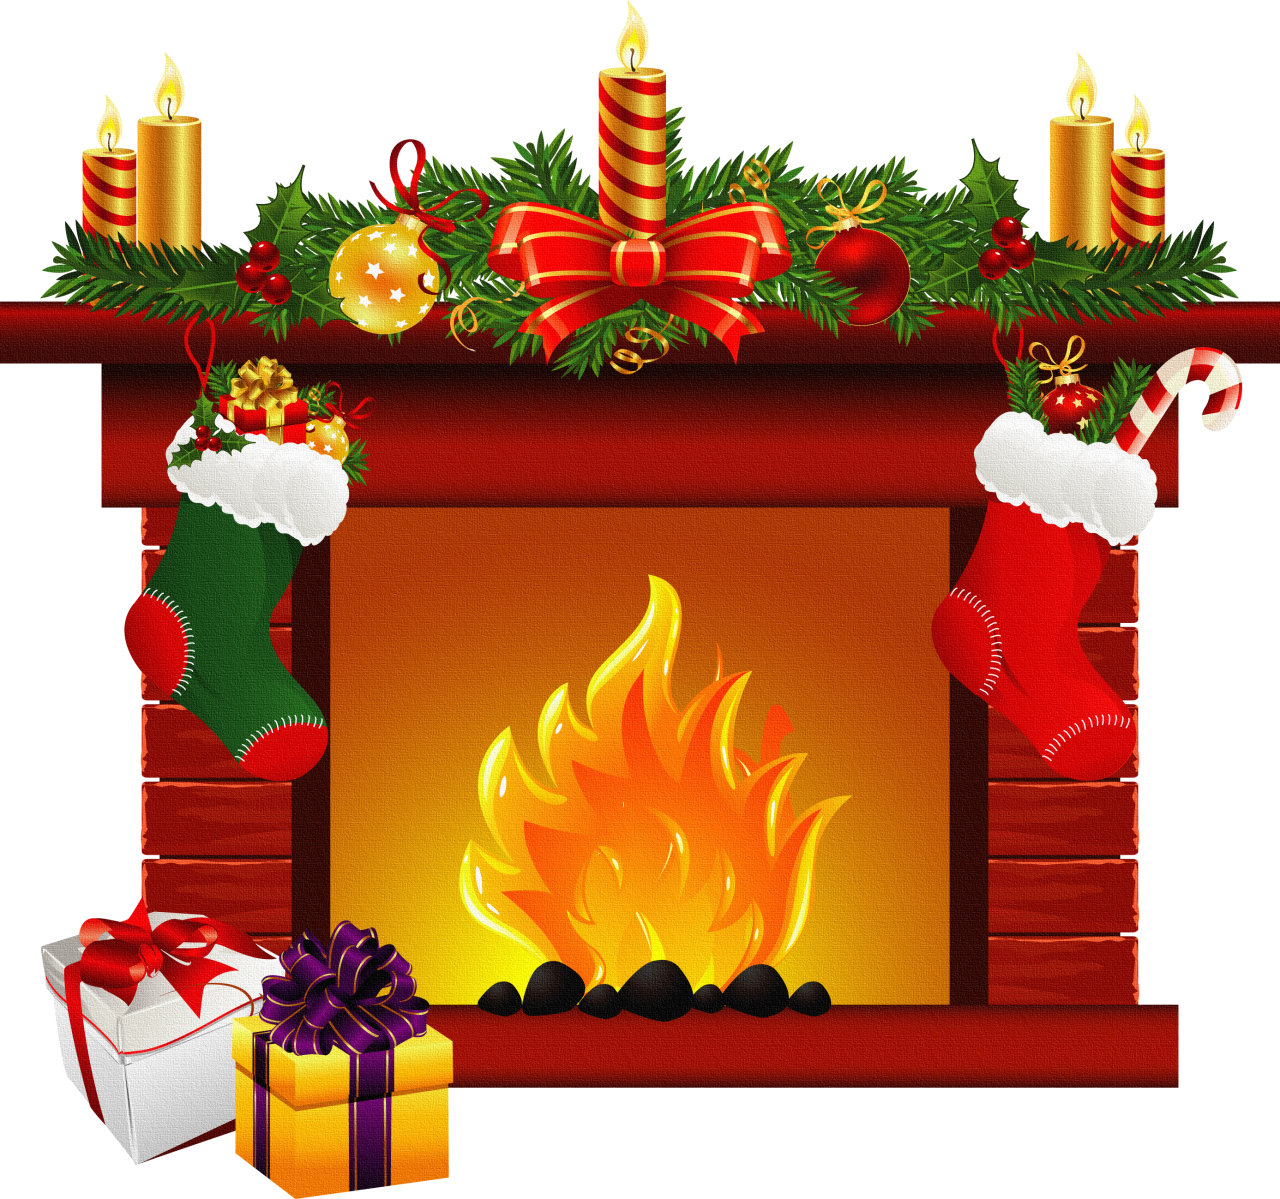 Wood house with chimney clipart clip royalty free stock Fireplace Clip Art #36605 | Blusas | Pinterest | Clip art, Christmas ... clip royalty free stock